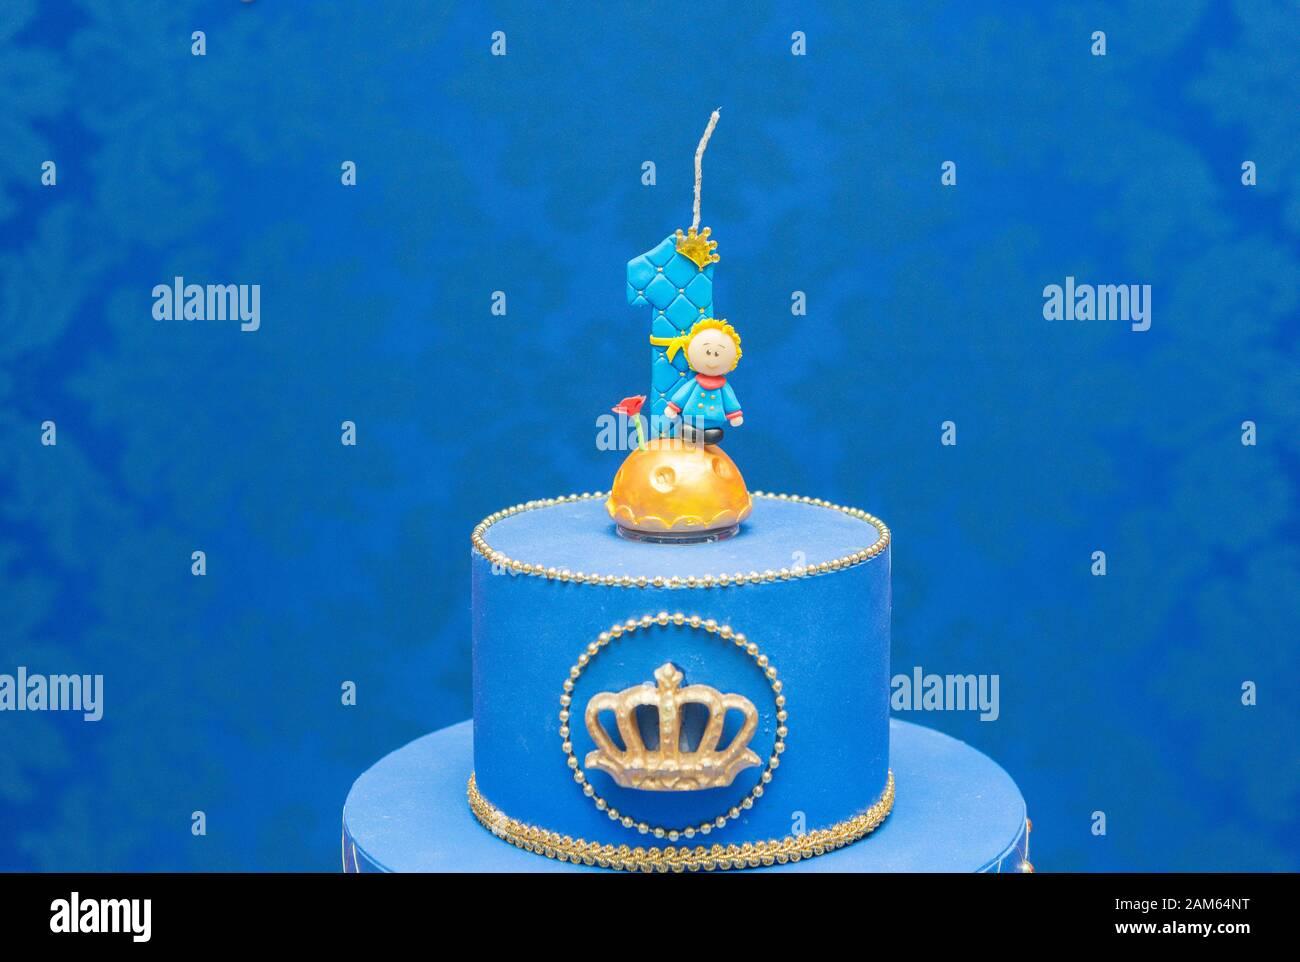 Sensational Number One Candle On A Blue Background Little Prince Theme Fake Personalised Birthday Cards Fashionlily Jamesorg